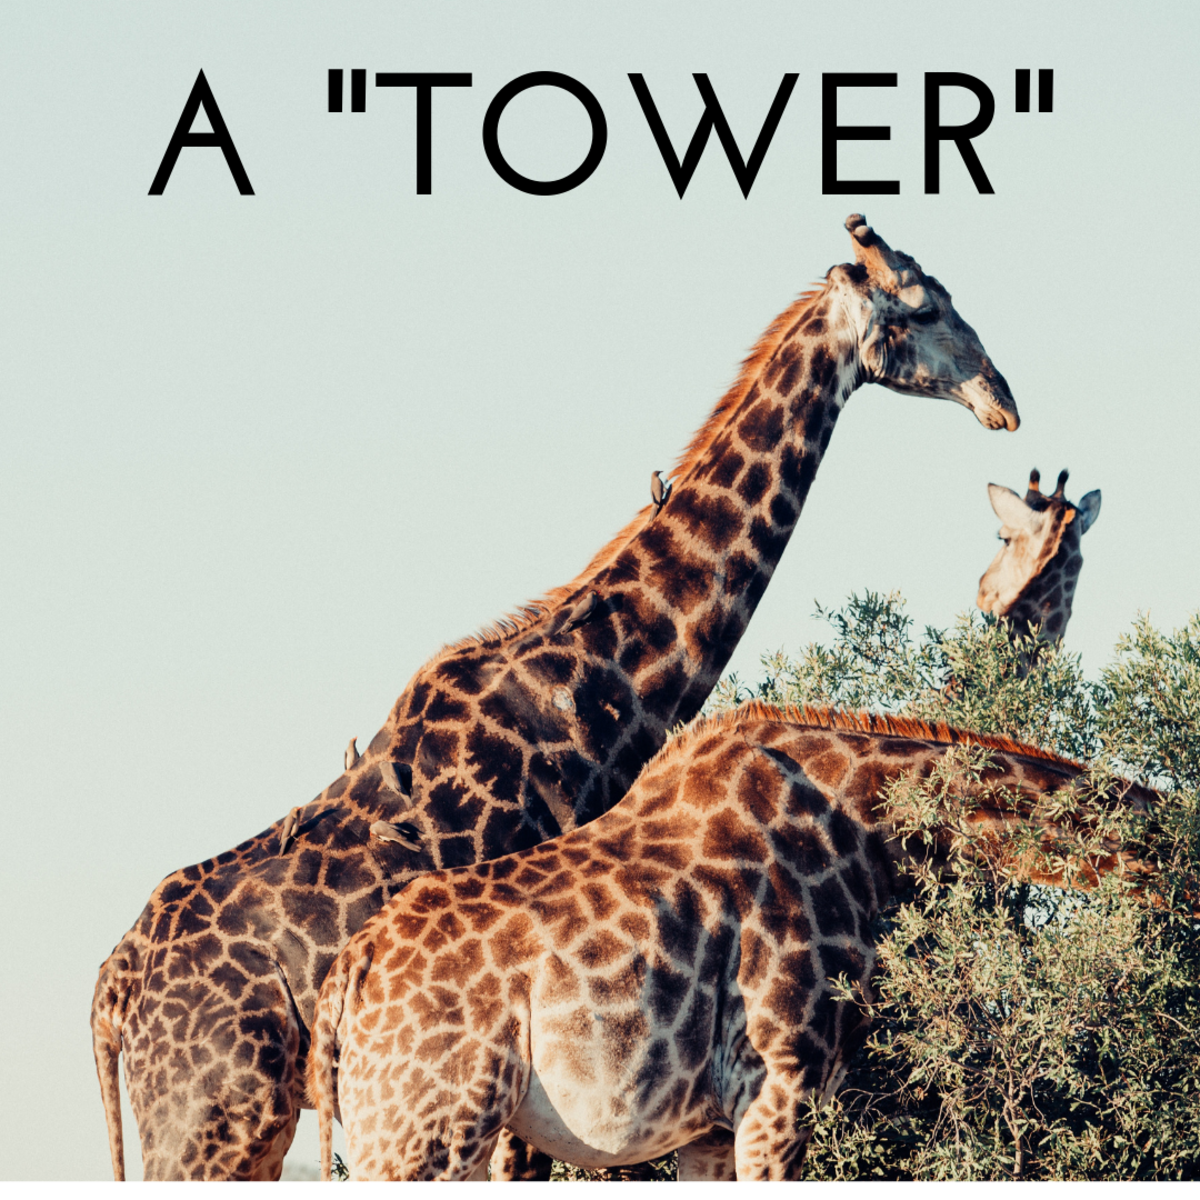 A tower of giraffes.